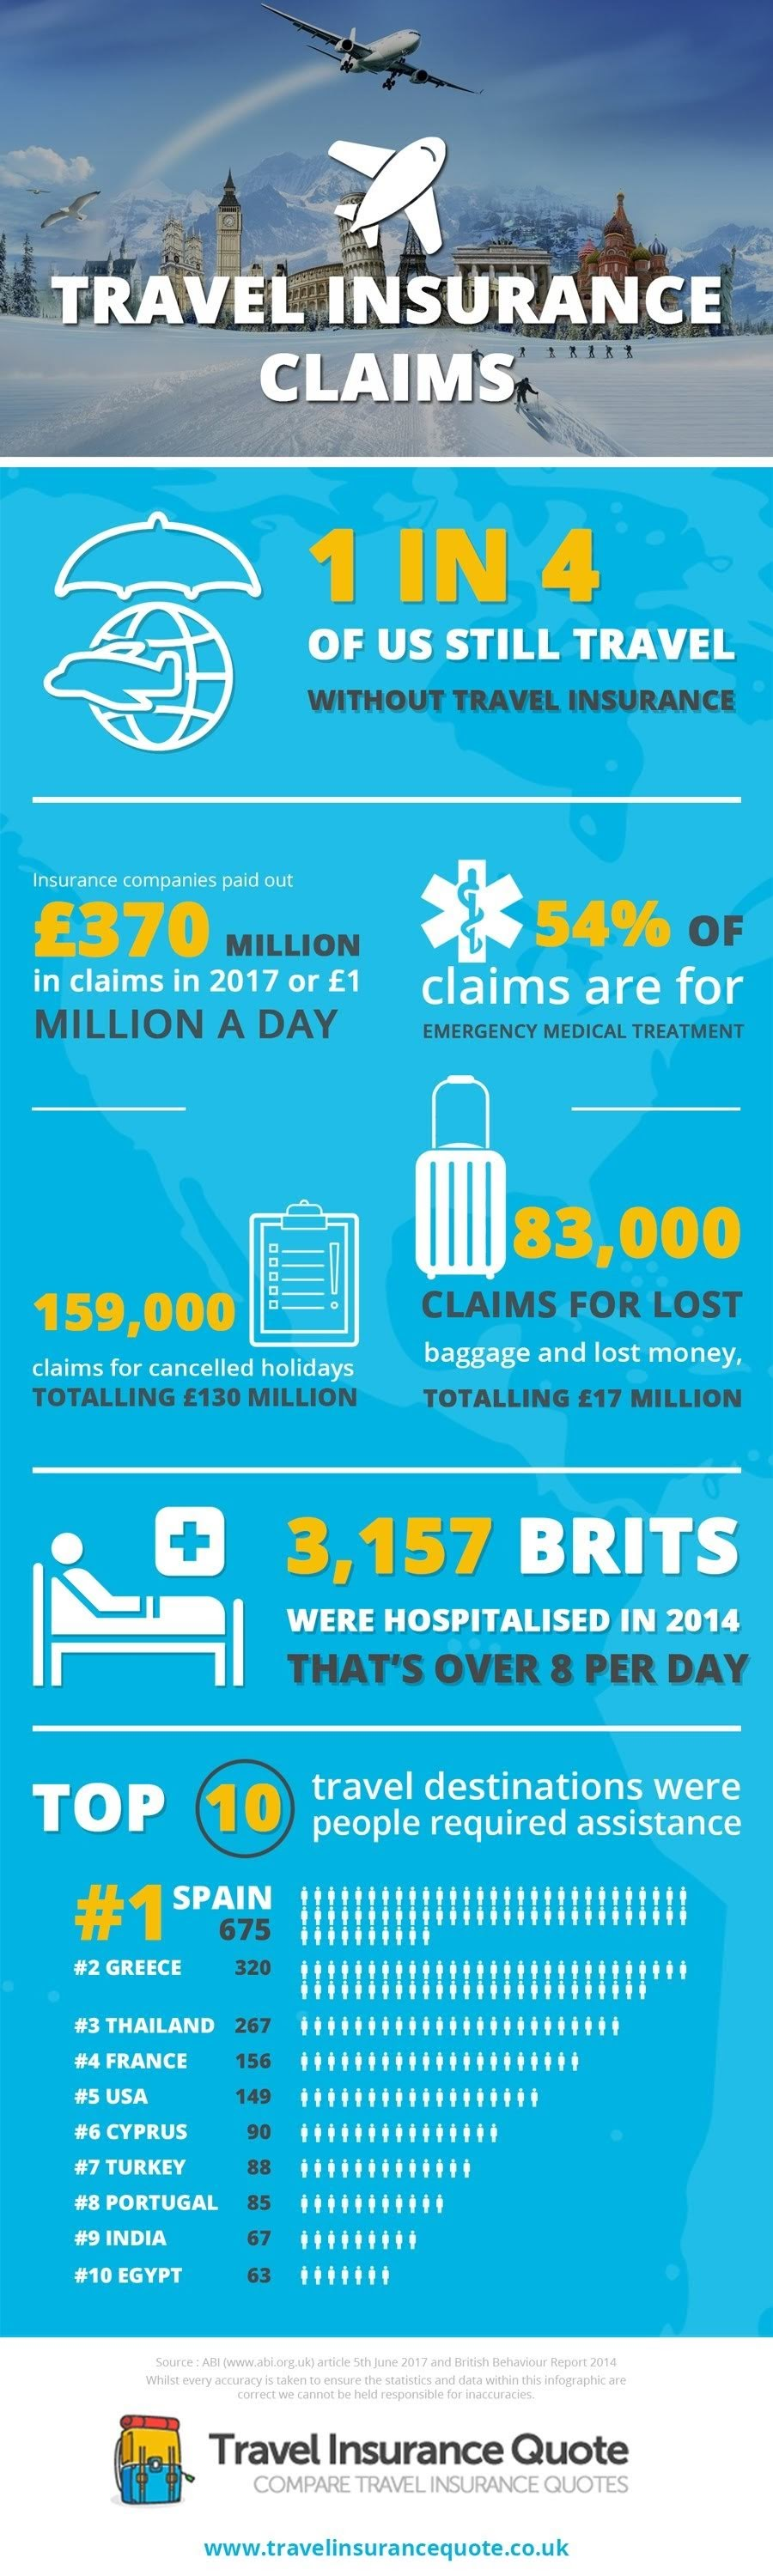 Travel Insurance Claims #infographic